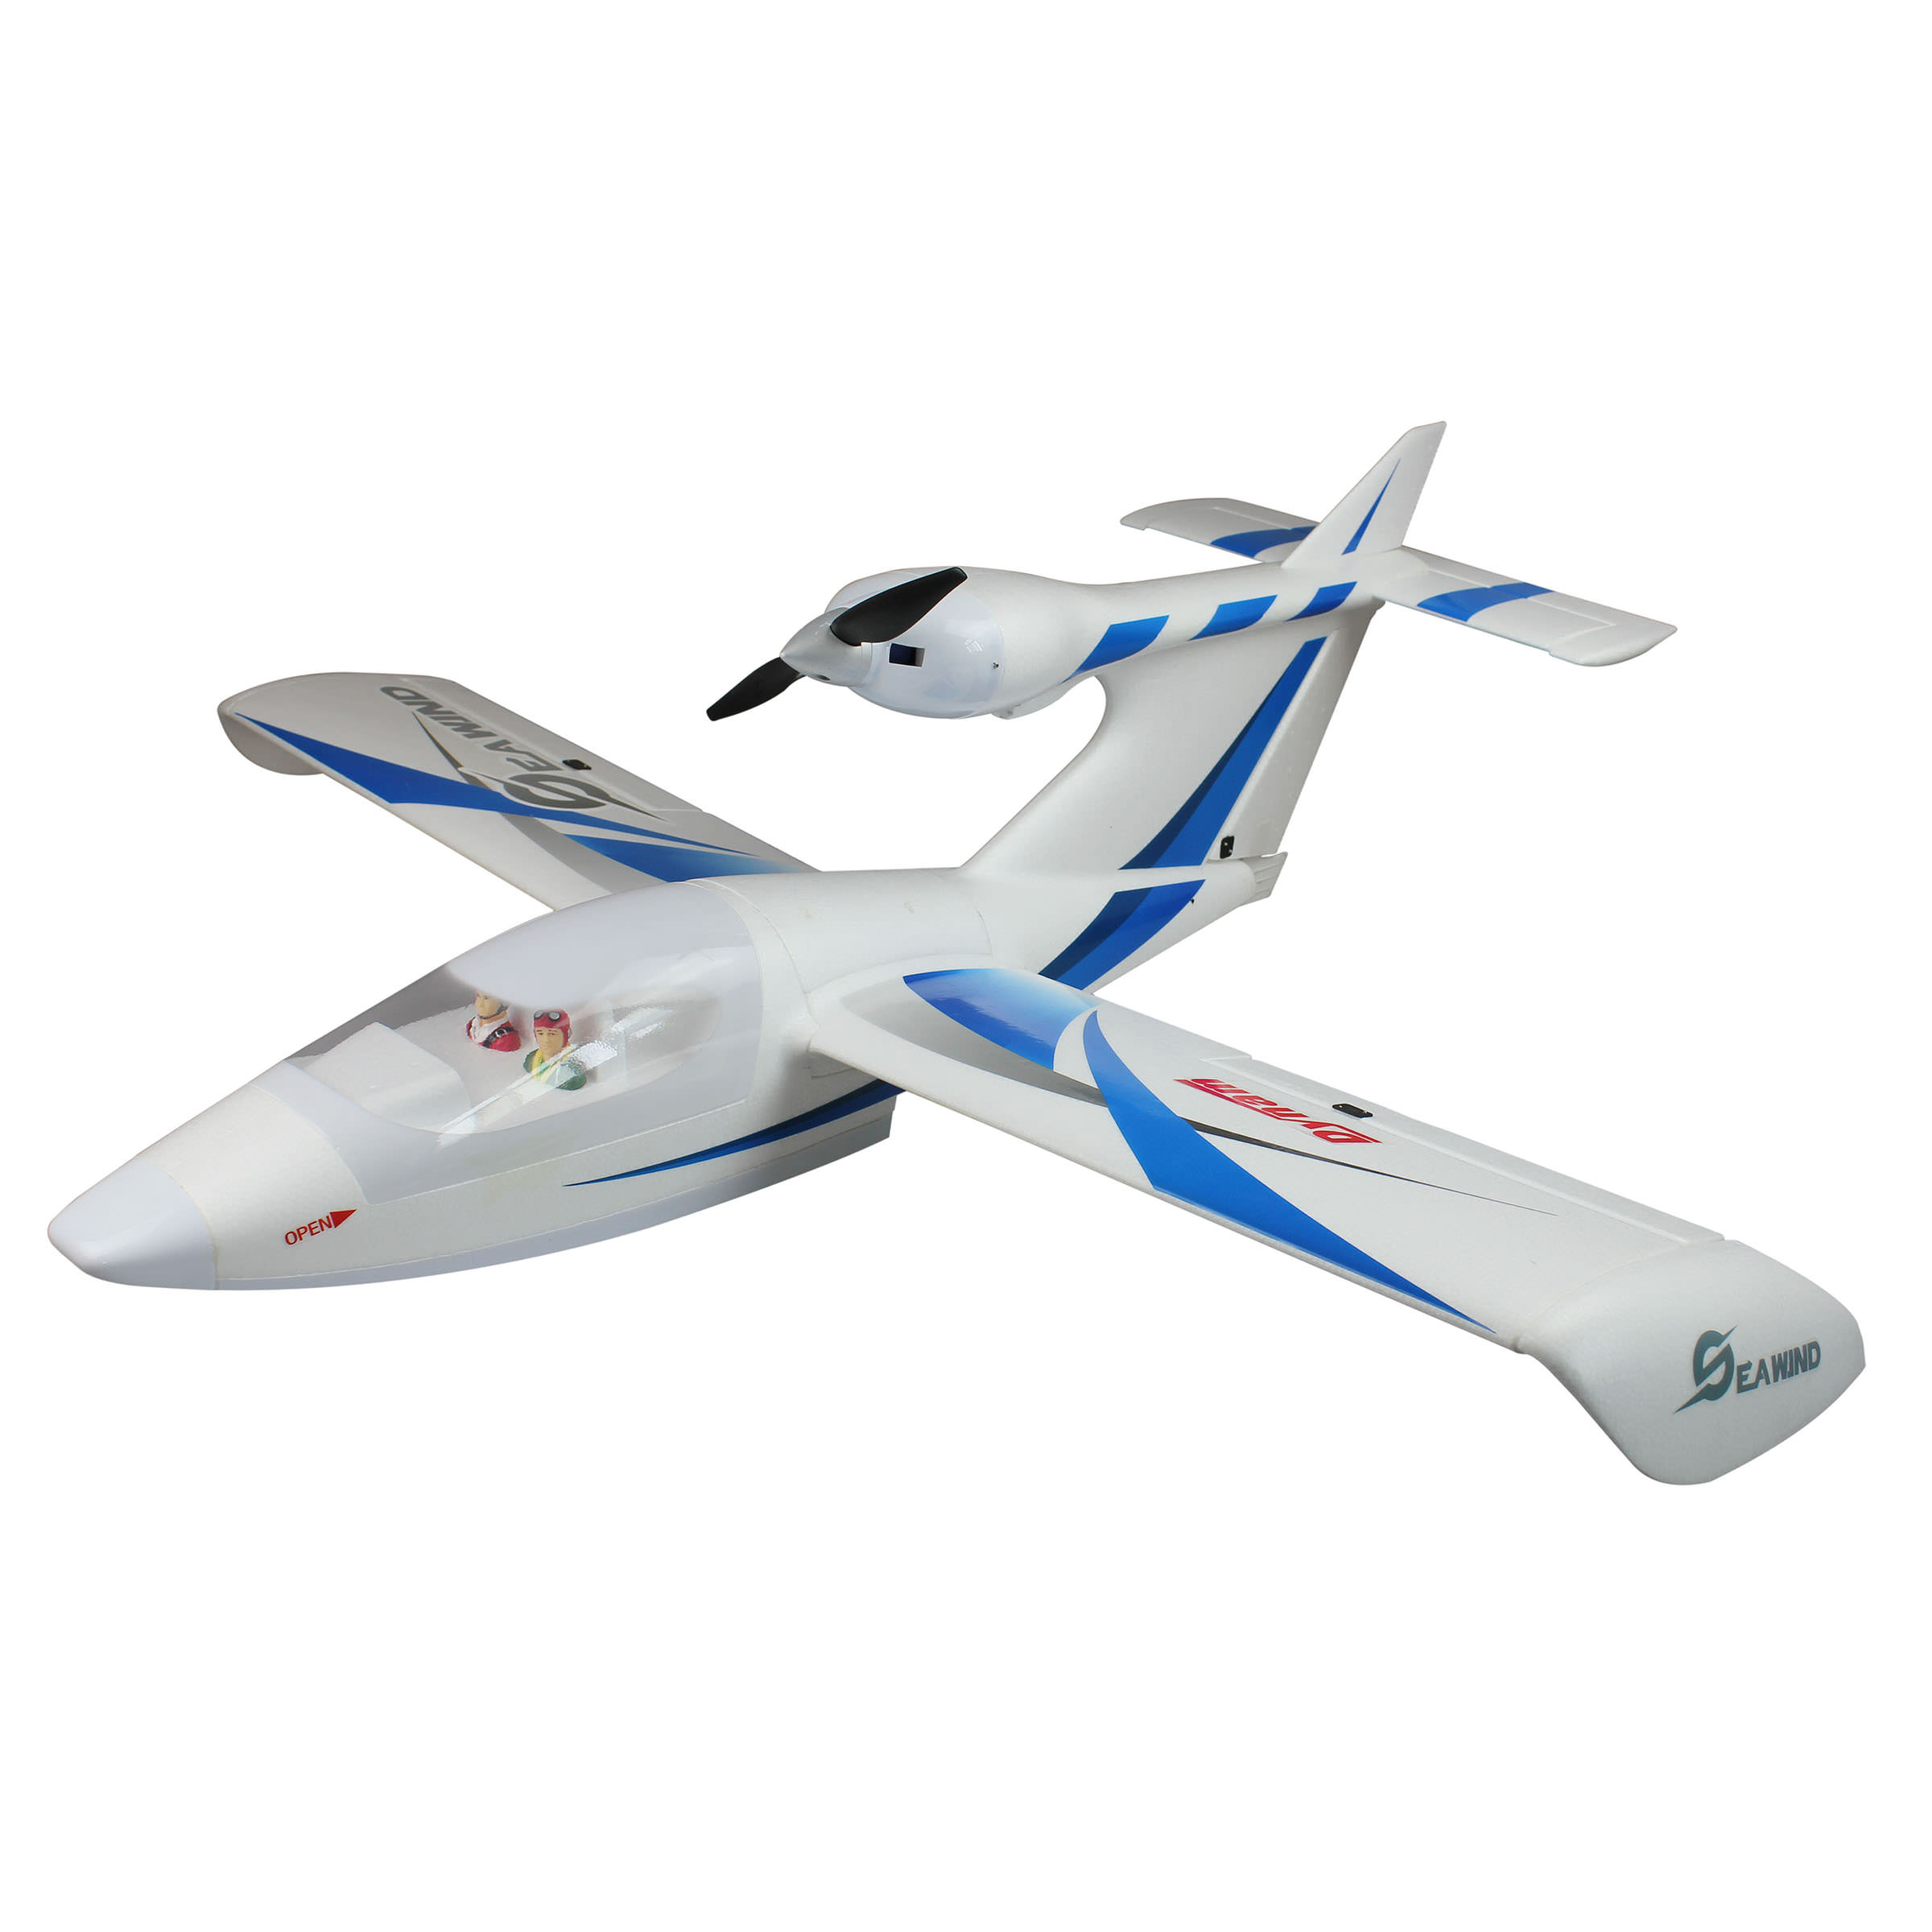 Dynam 8968 Seawind Blue Rc Plane At Hobby Warehouse